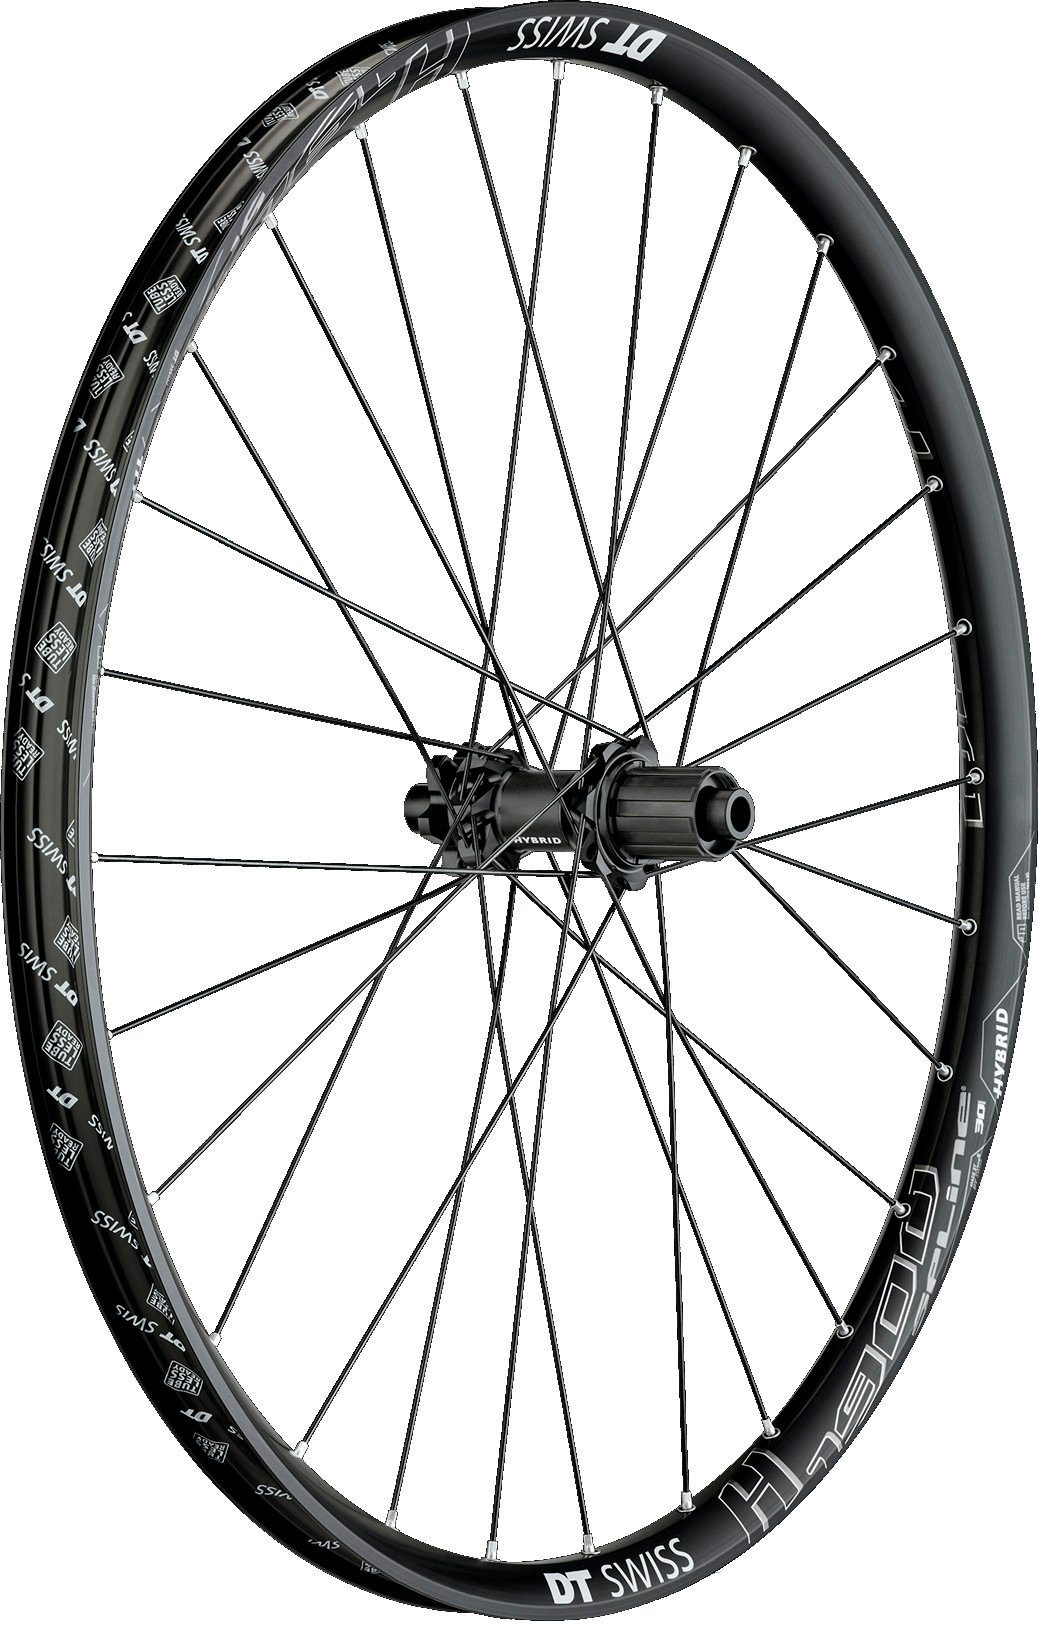 "DT Swiss Laufrad »H 1900 Spline Hinterrad 27,5"" Hybrid Boost 30mm«"